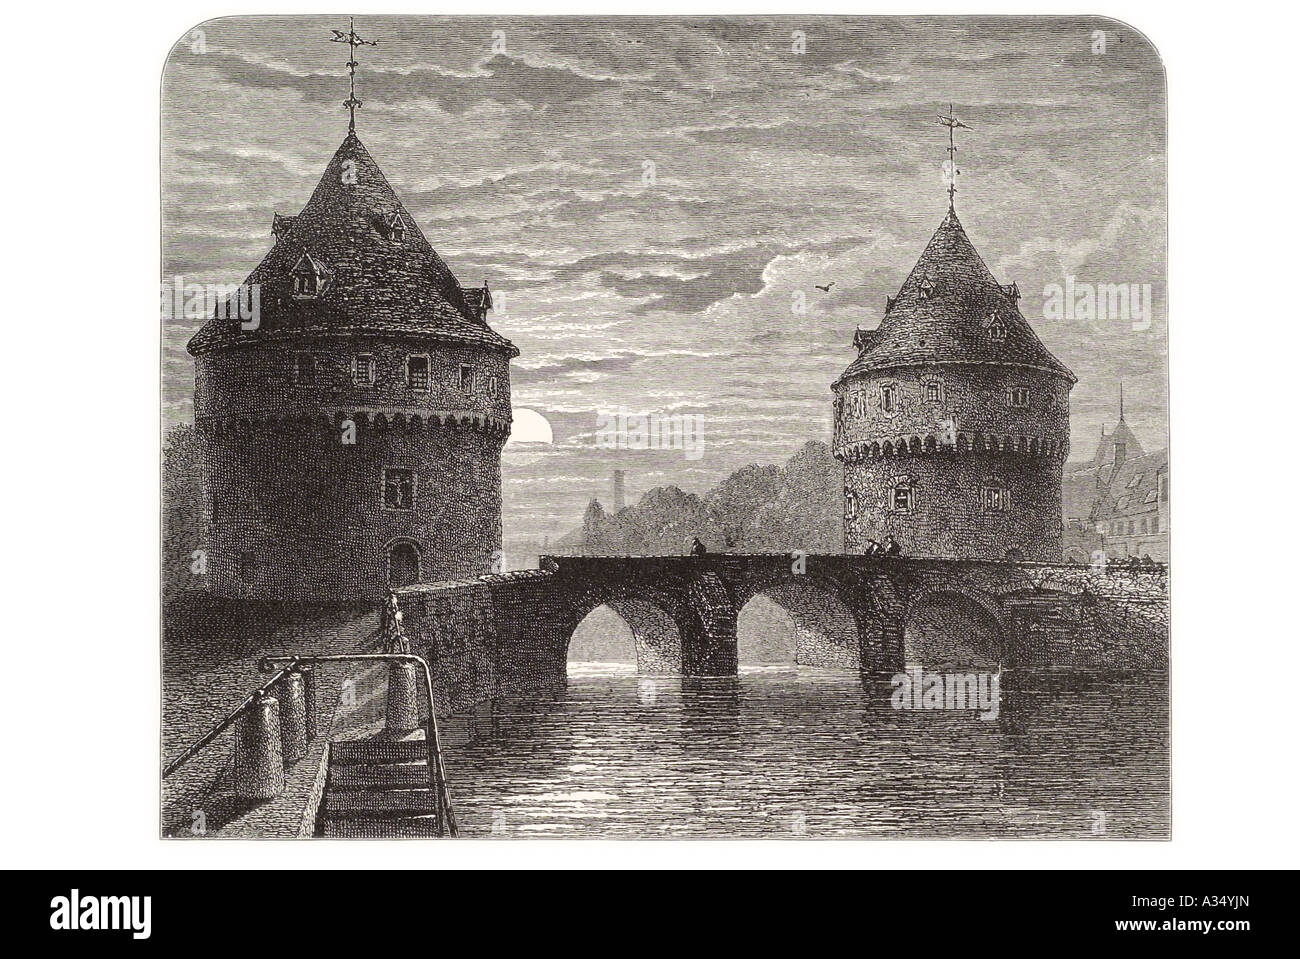 Broel round tower arch bridge river lys Belgique Flanders Benelux night moon stone transport navigable waterway - Stock Image